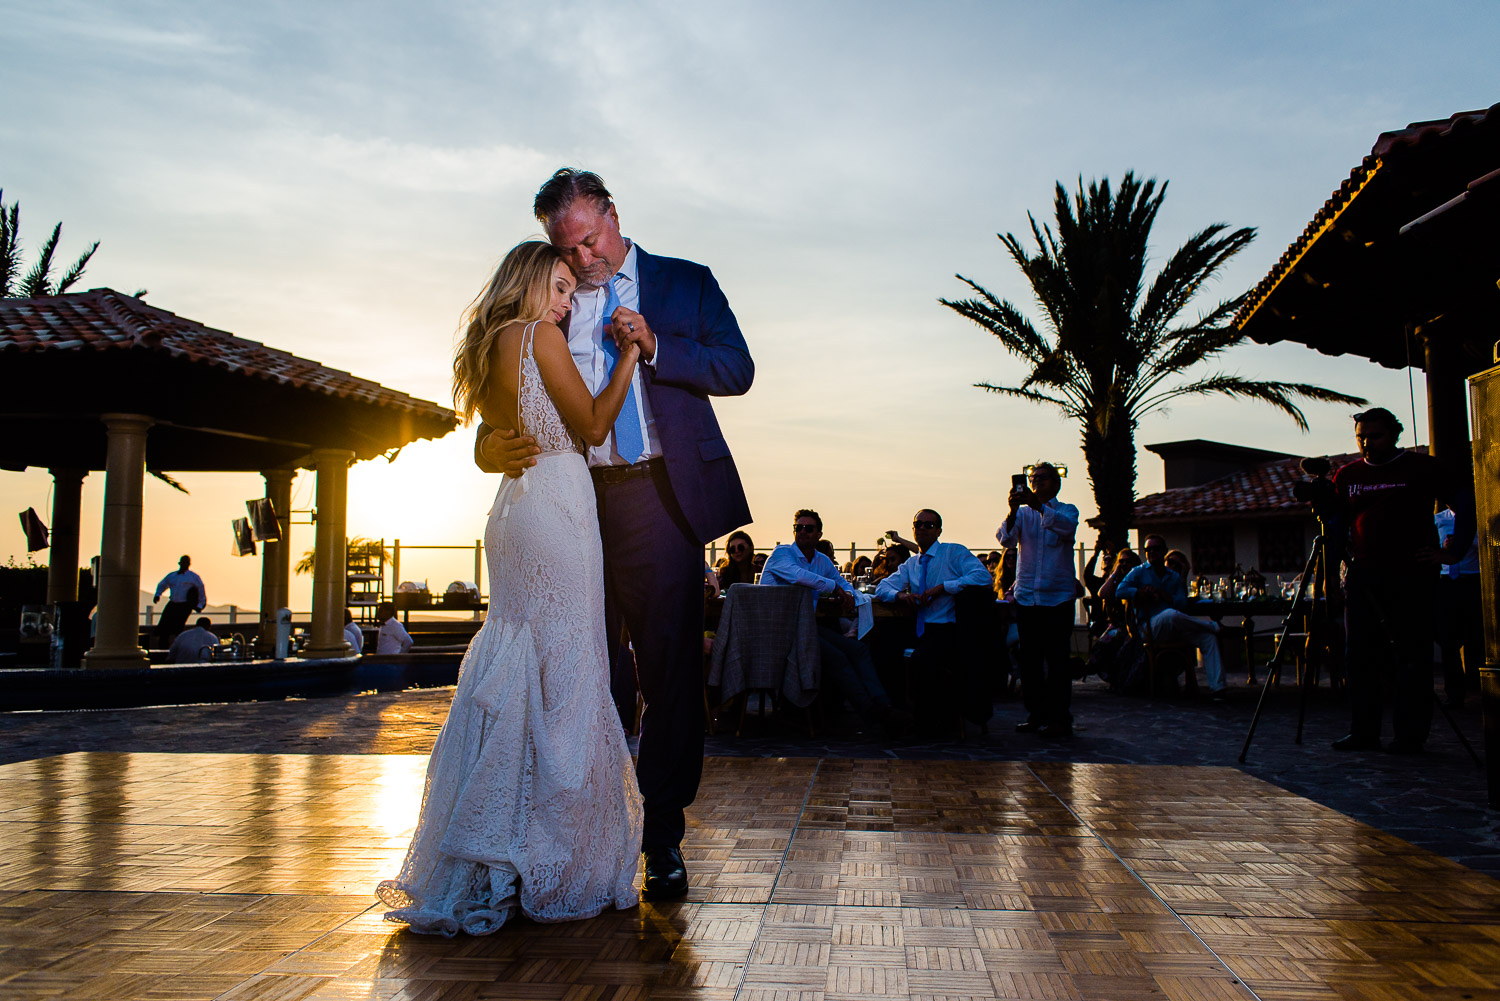 Bride and her father during their first dance at Pueblo Bonito Sunset Beach Los Cabos. GVphotographer is an amazing Los Cabos, Mexico destination wedding professional photographer